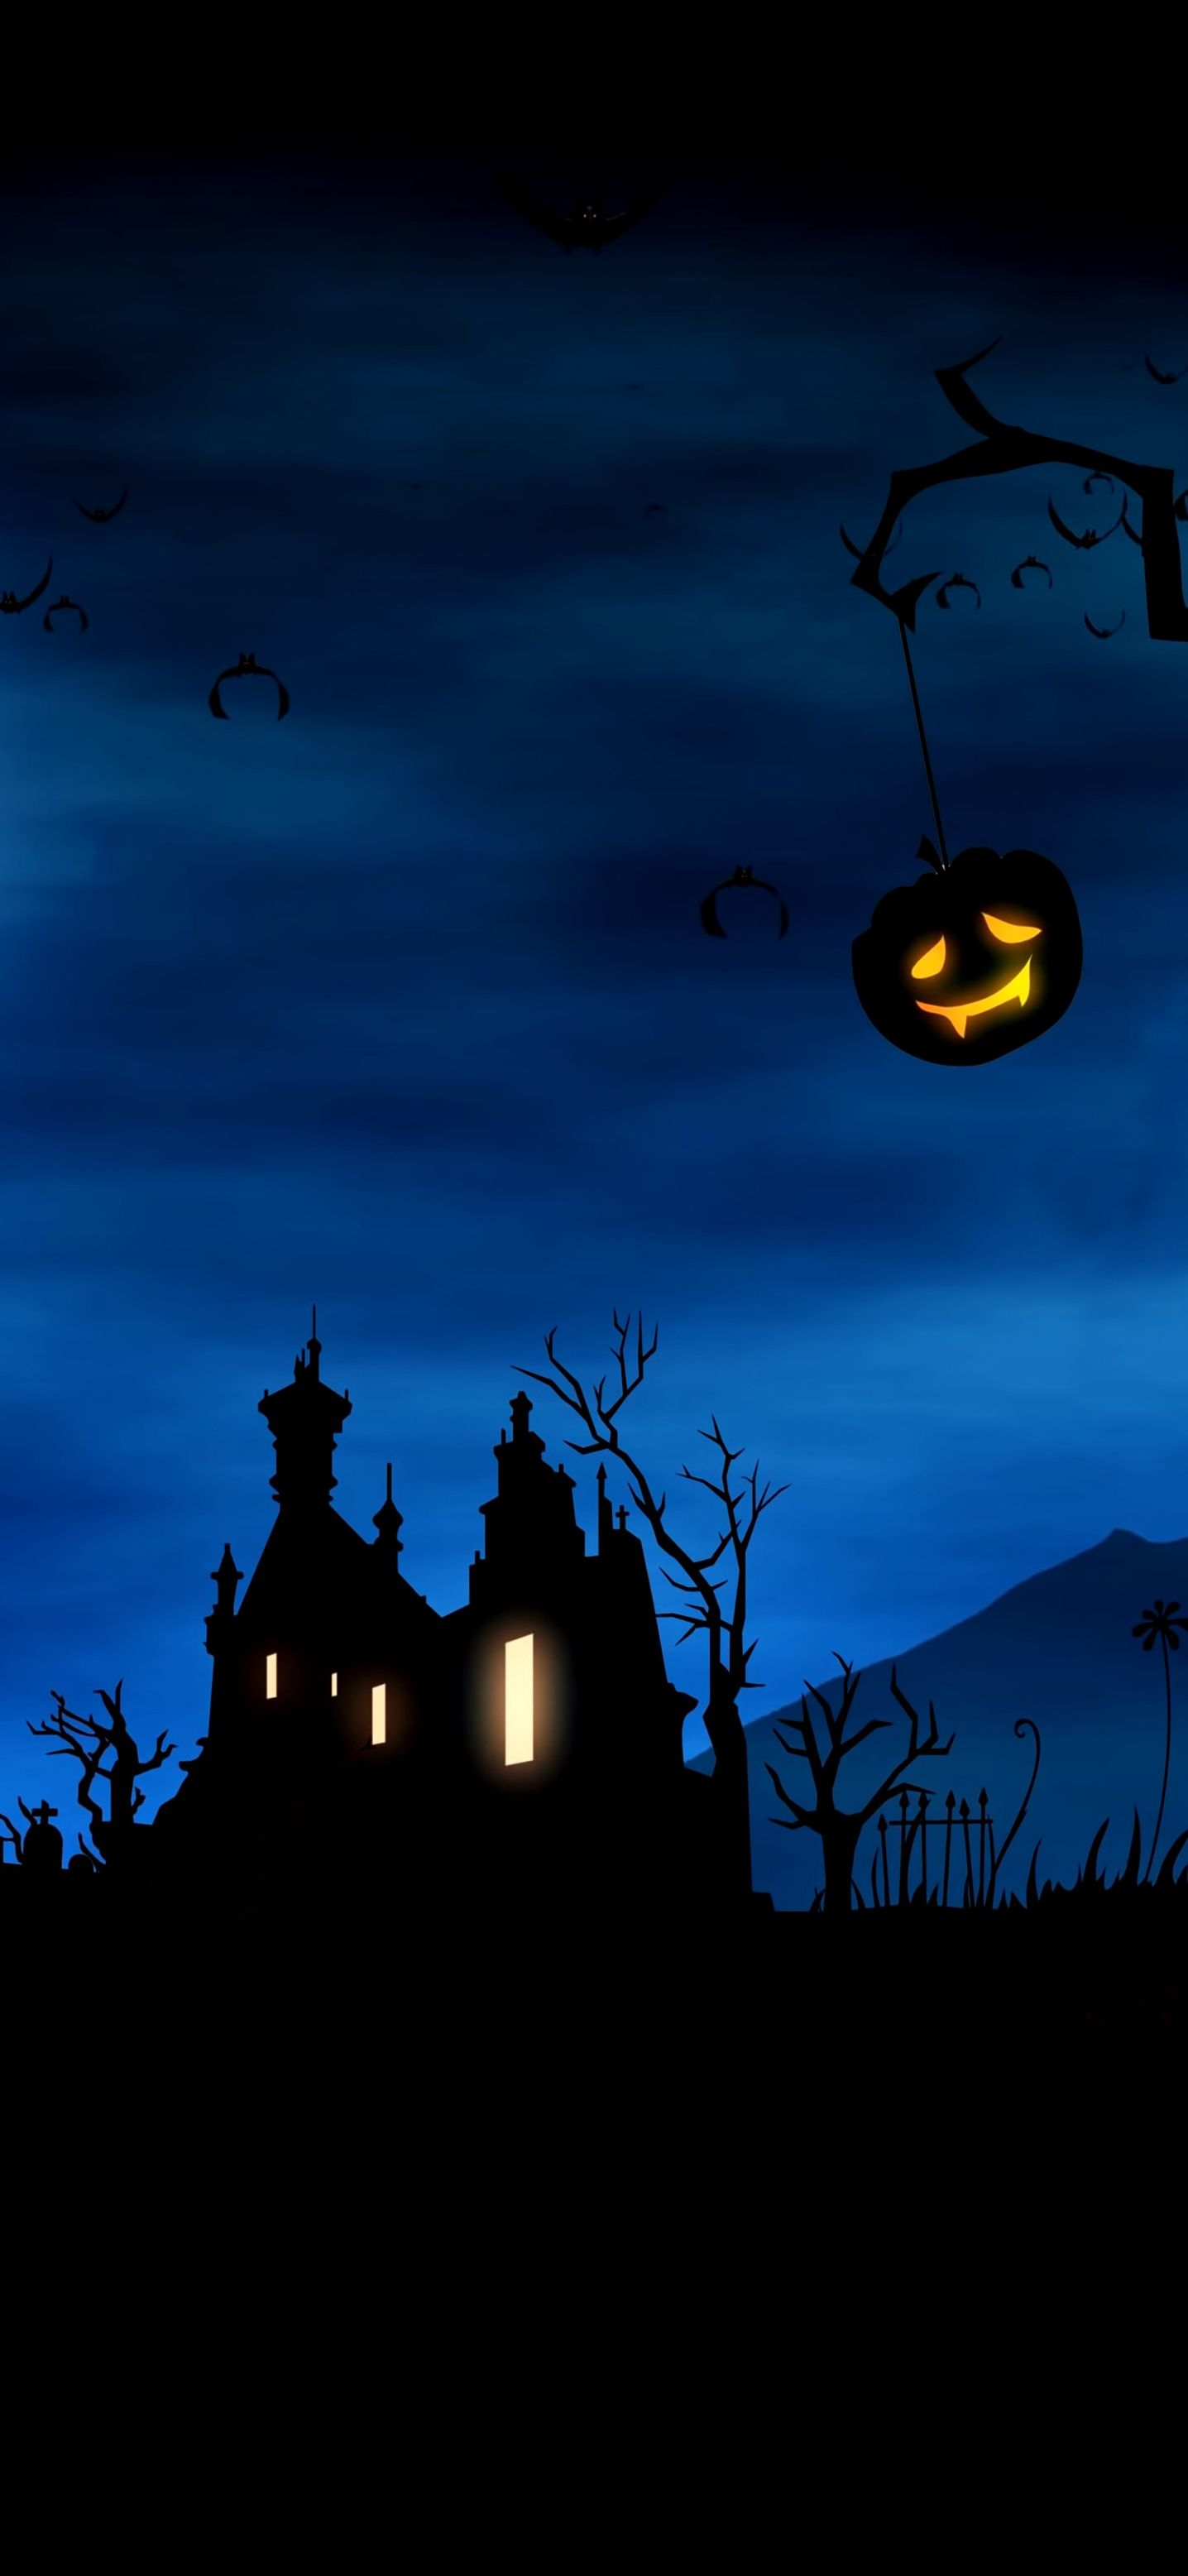 30 Best Wallpapers For Iphone Xs Xs Max And Iphone Xr Fhd Halloween Wallpaper Cool Wallpapers For Phones Best Iphone Wallpapers